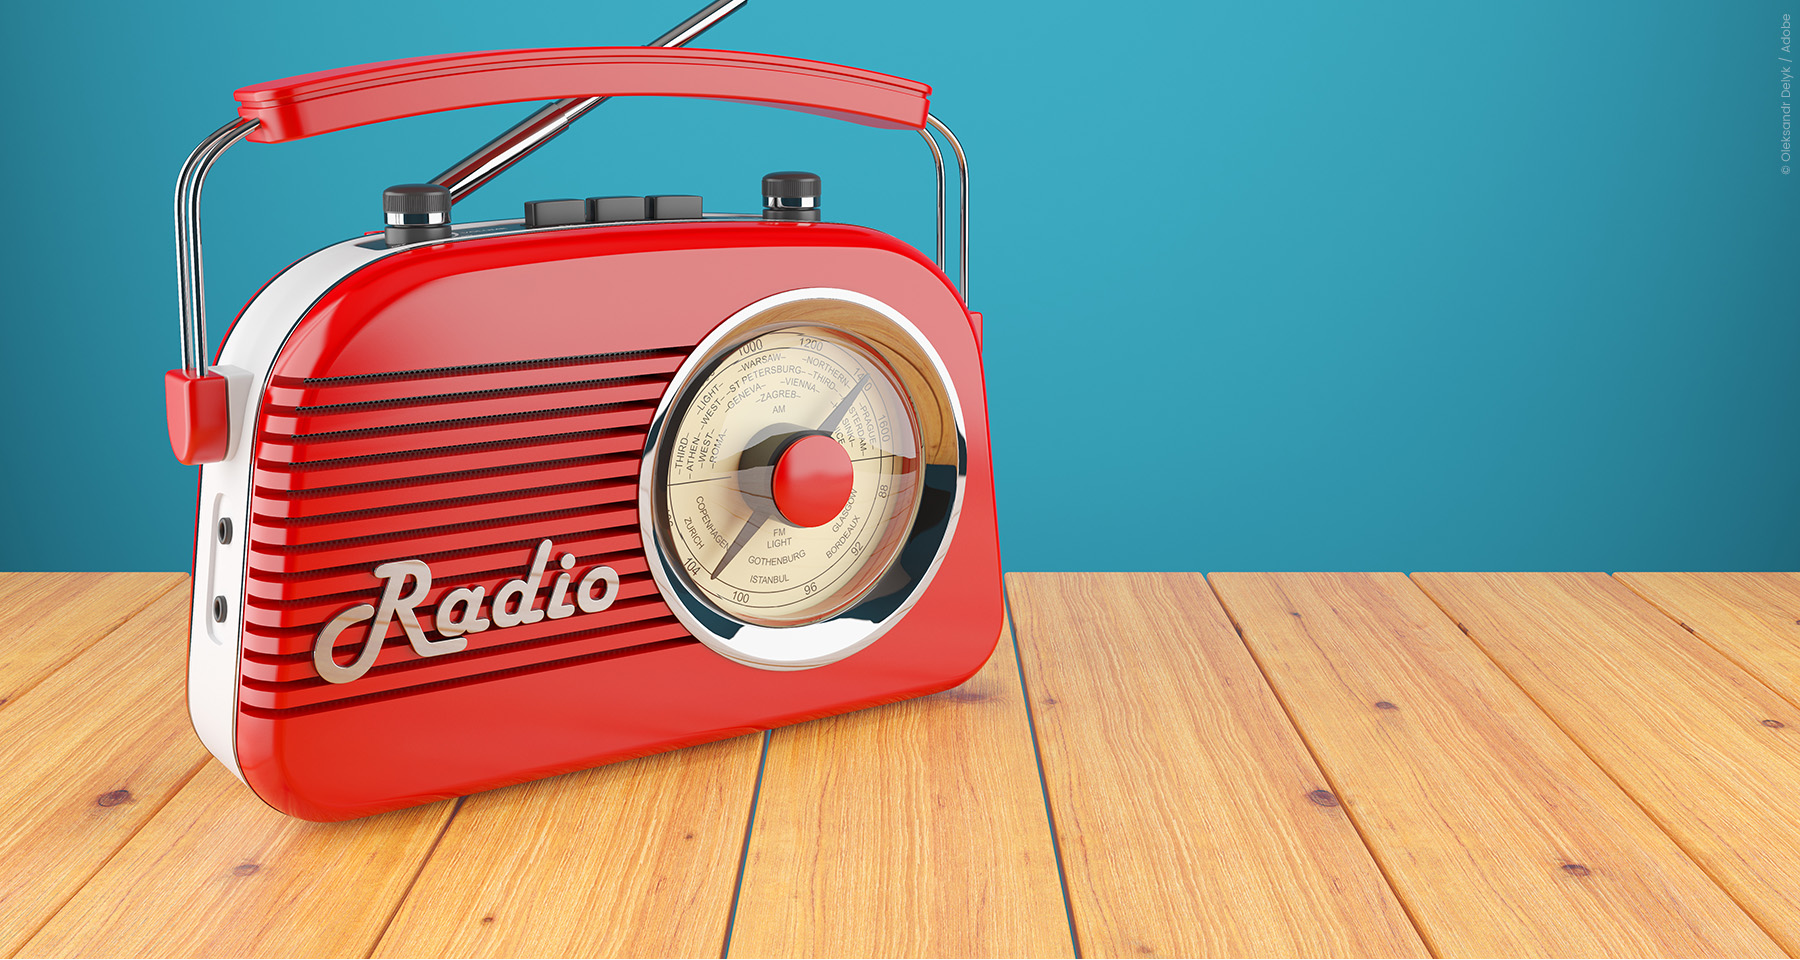 3 reasons news media companies should disrupt radio